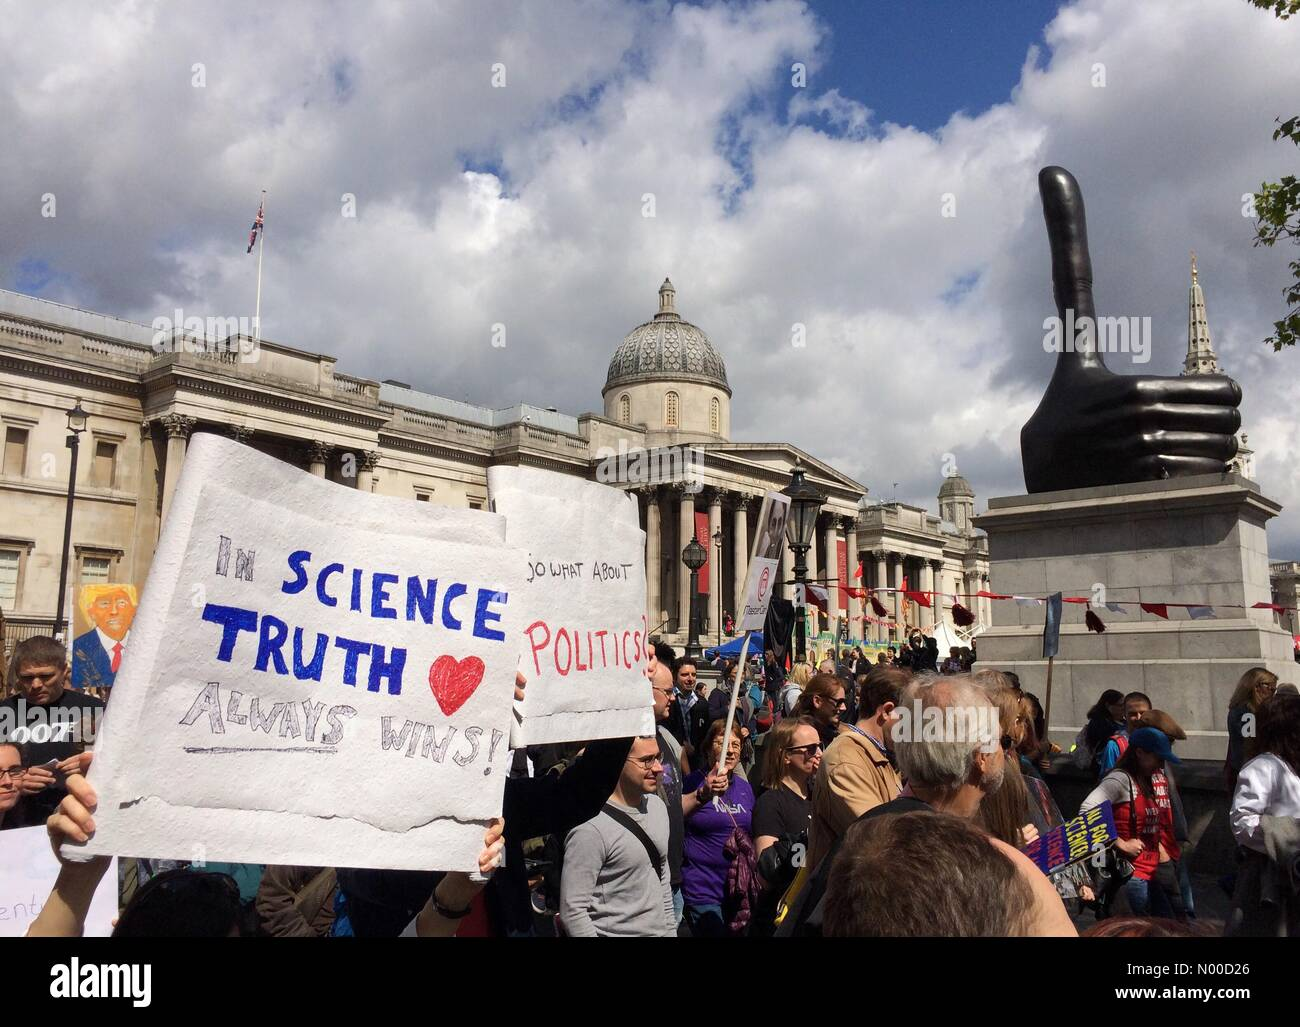 London, UK. 22nd Apr, 2017. March for Science, 22nd April 2017 London, UK. Part of an international movement recognising Stock Photo